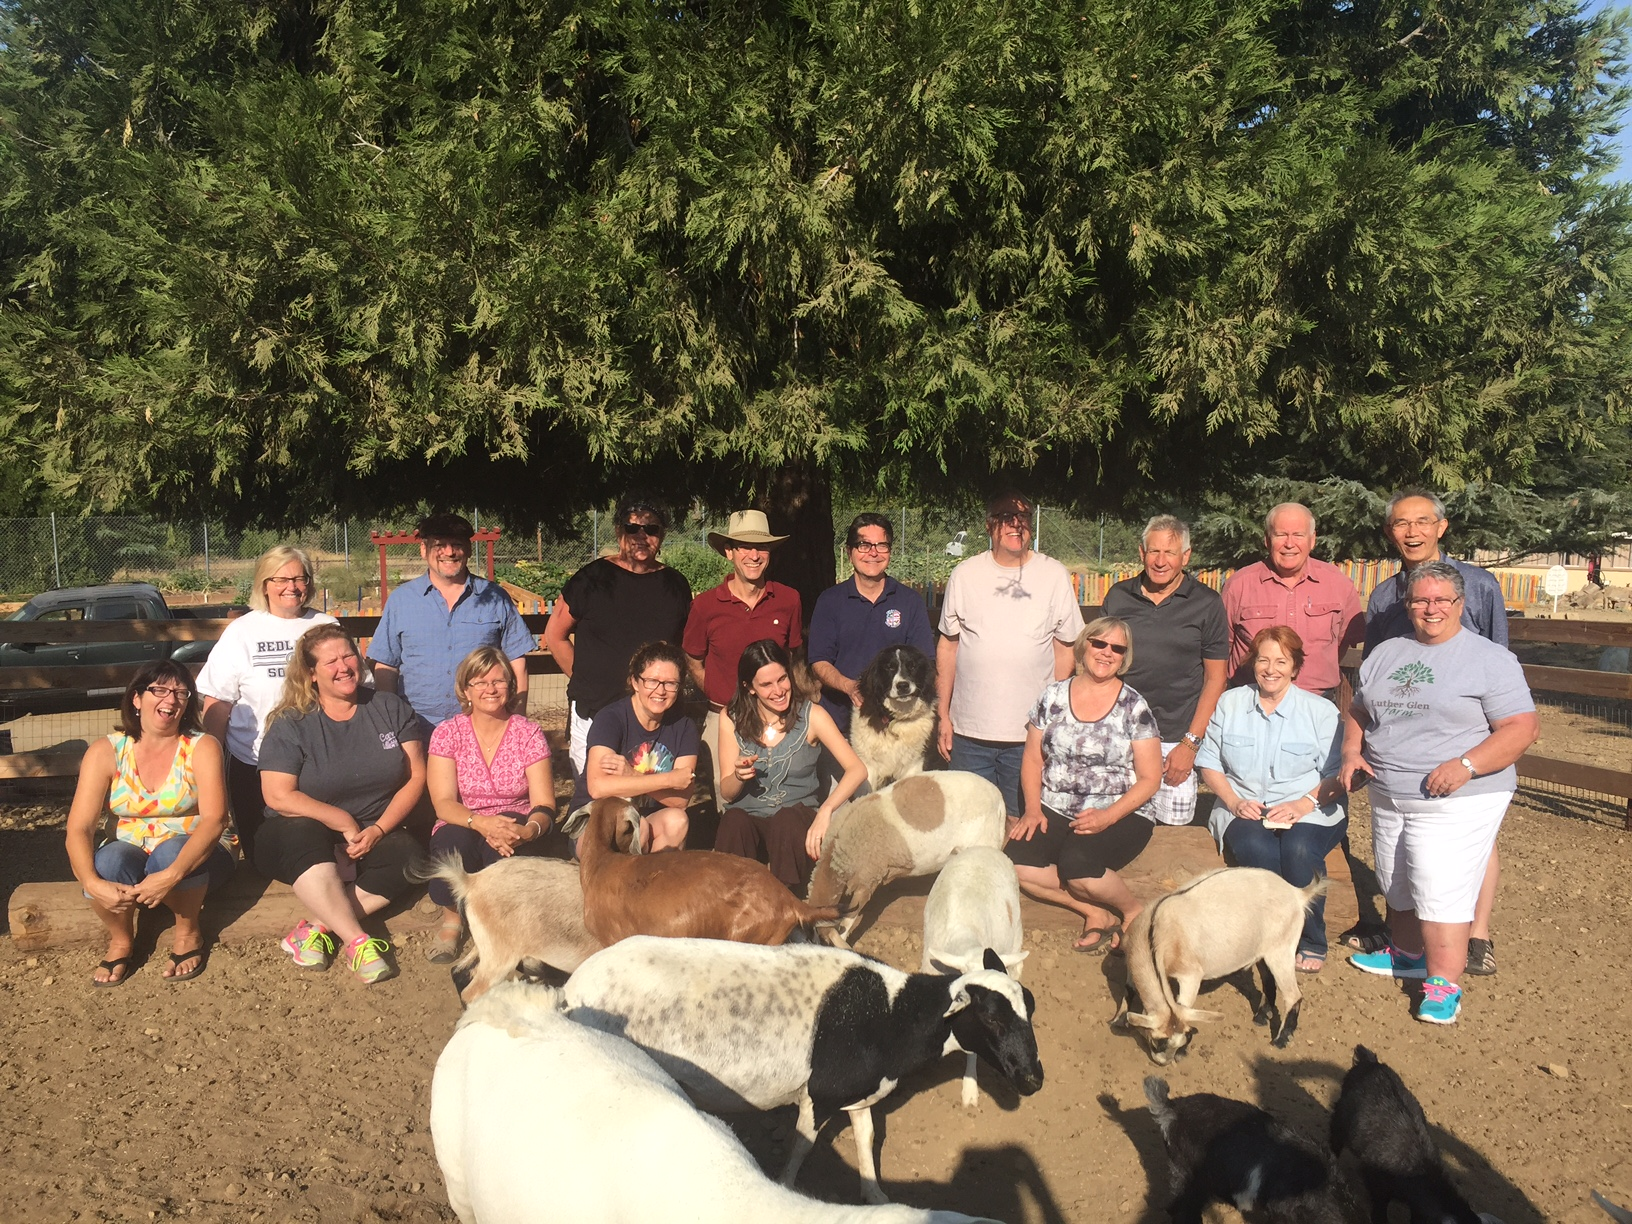 A group of people standing next to a cow